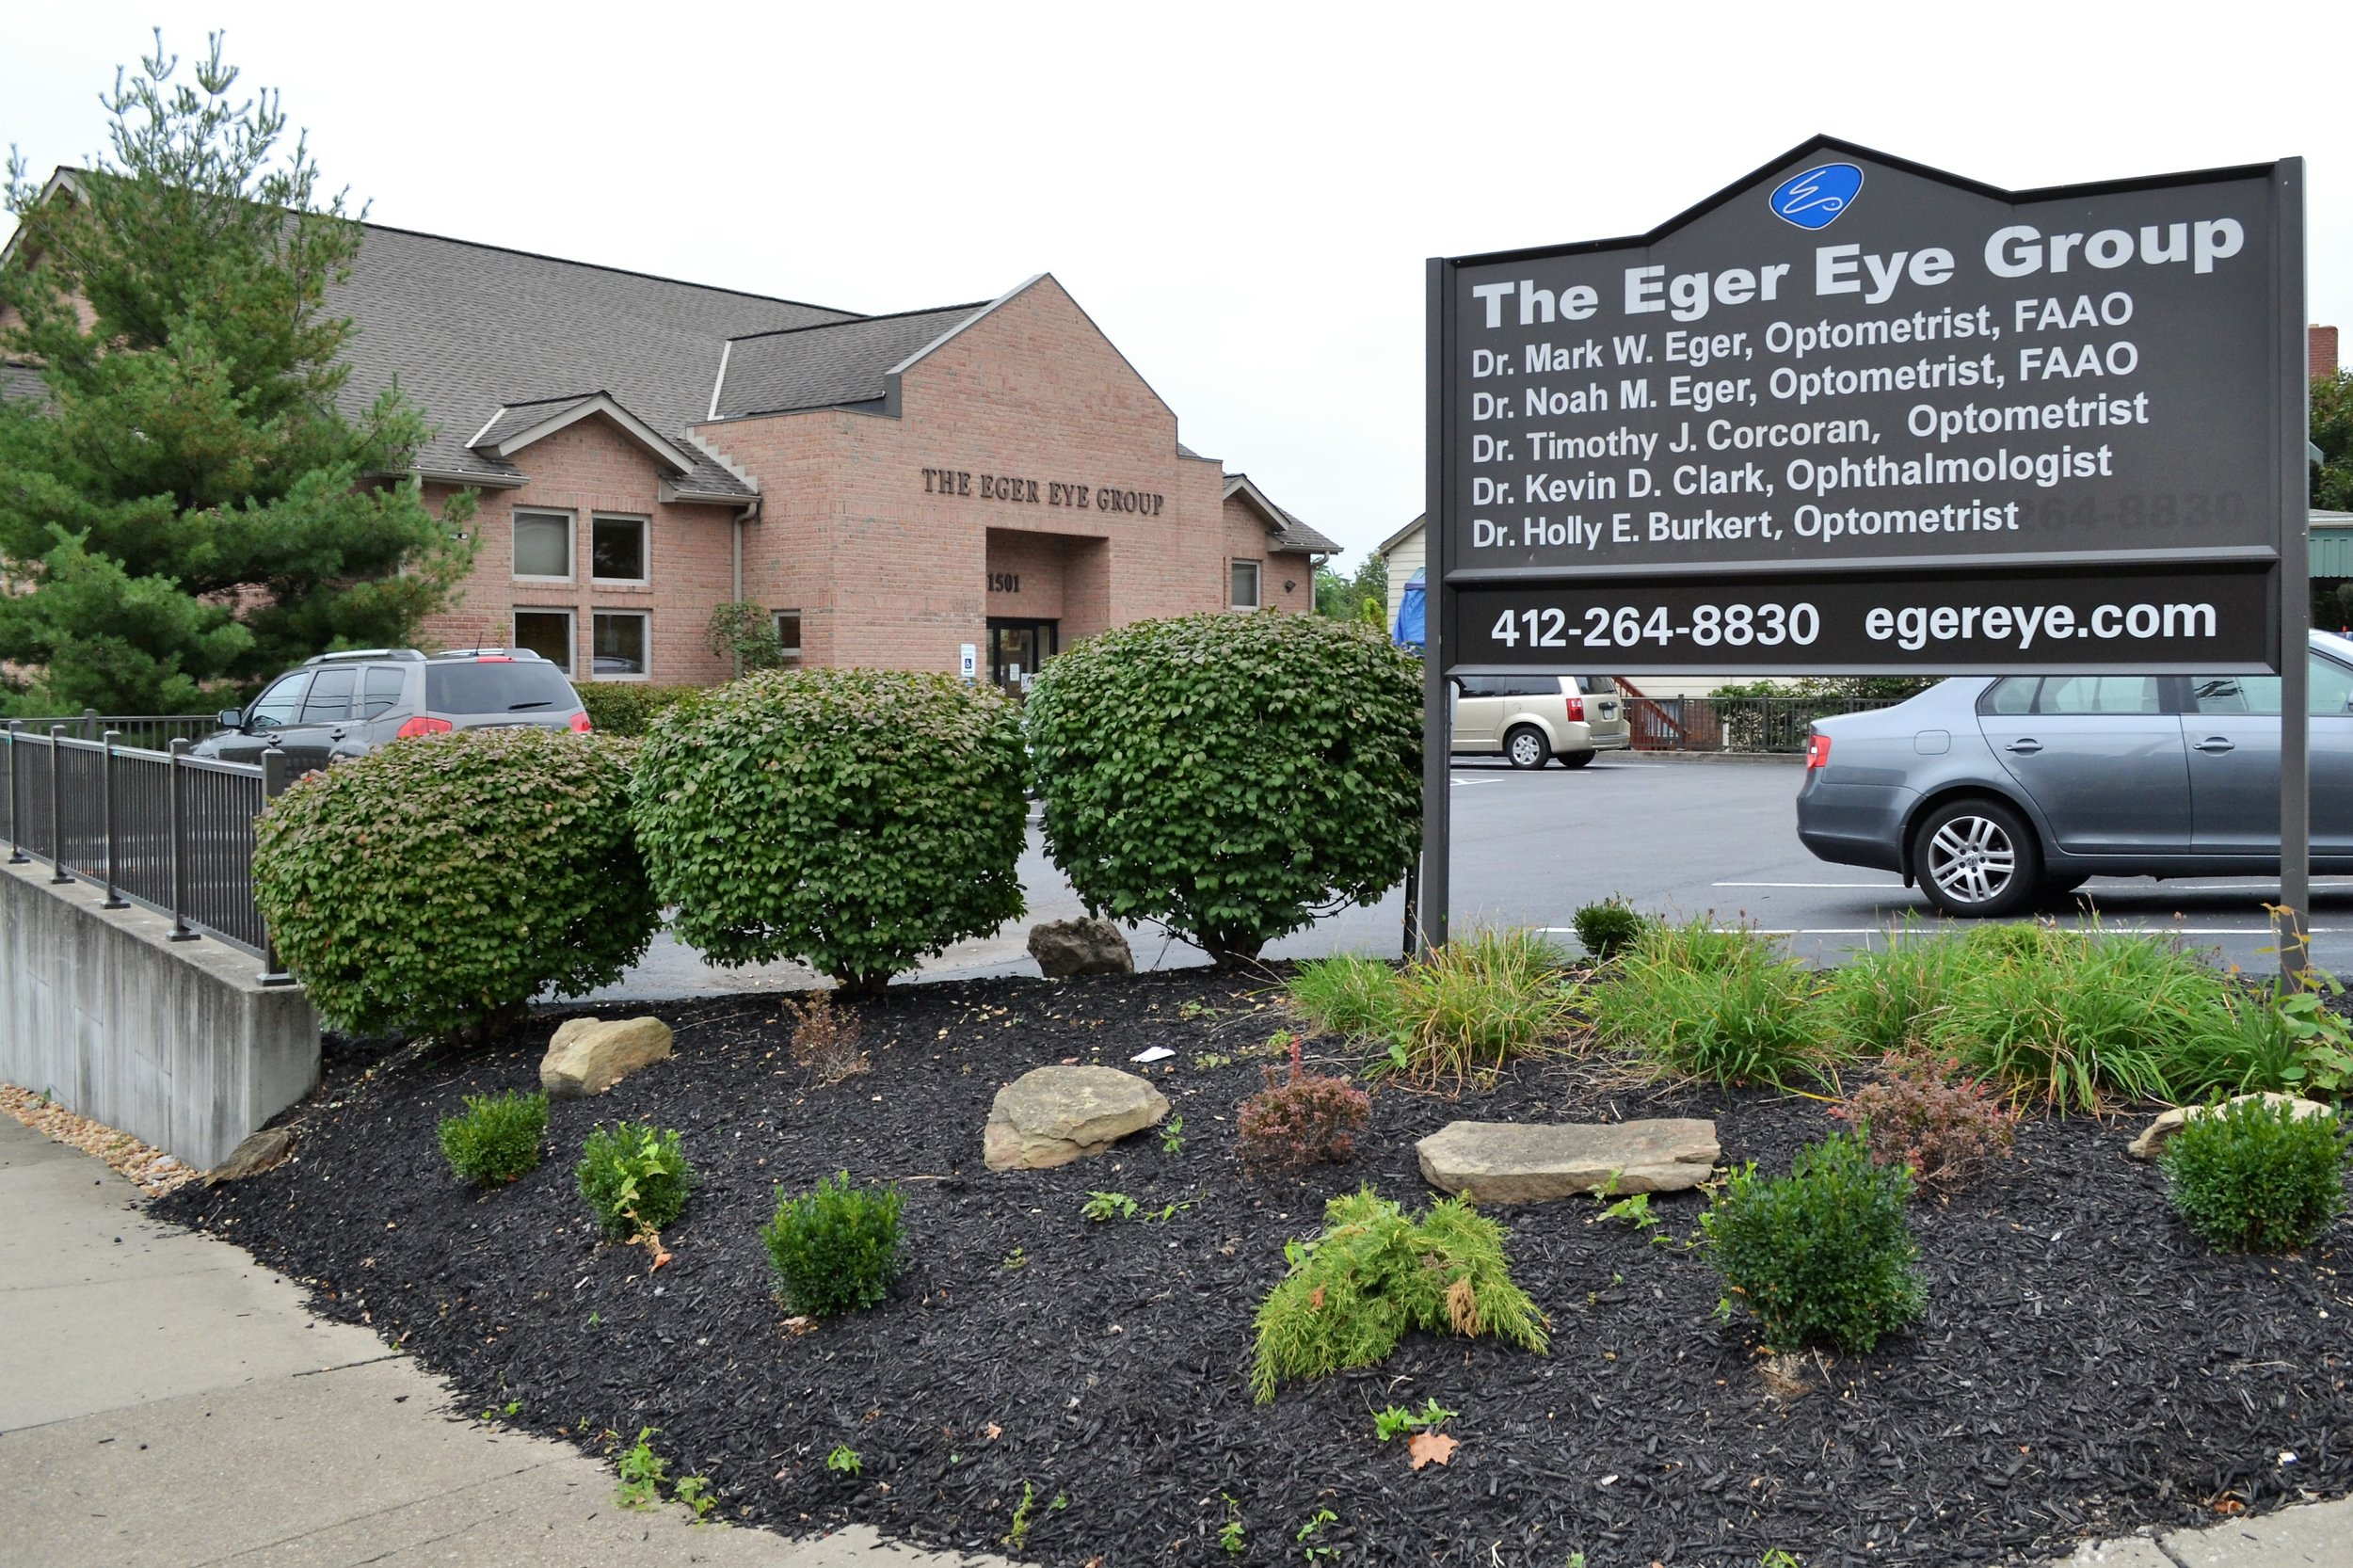 The Eger Eye Group - 1501 State Ave,(412) 264-8830